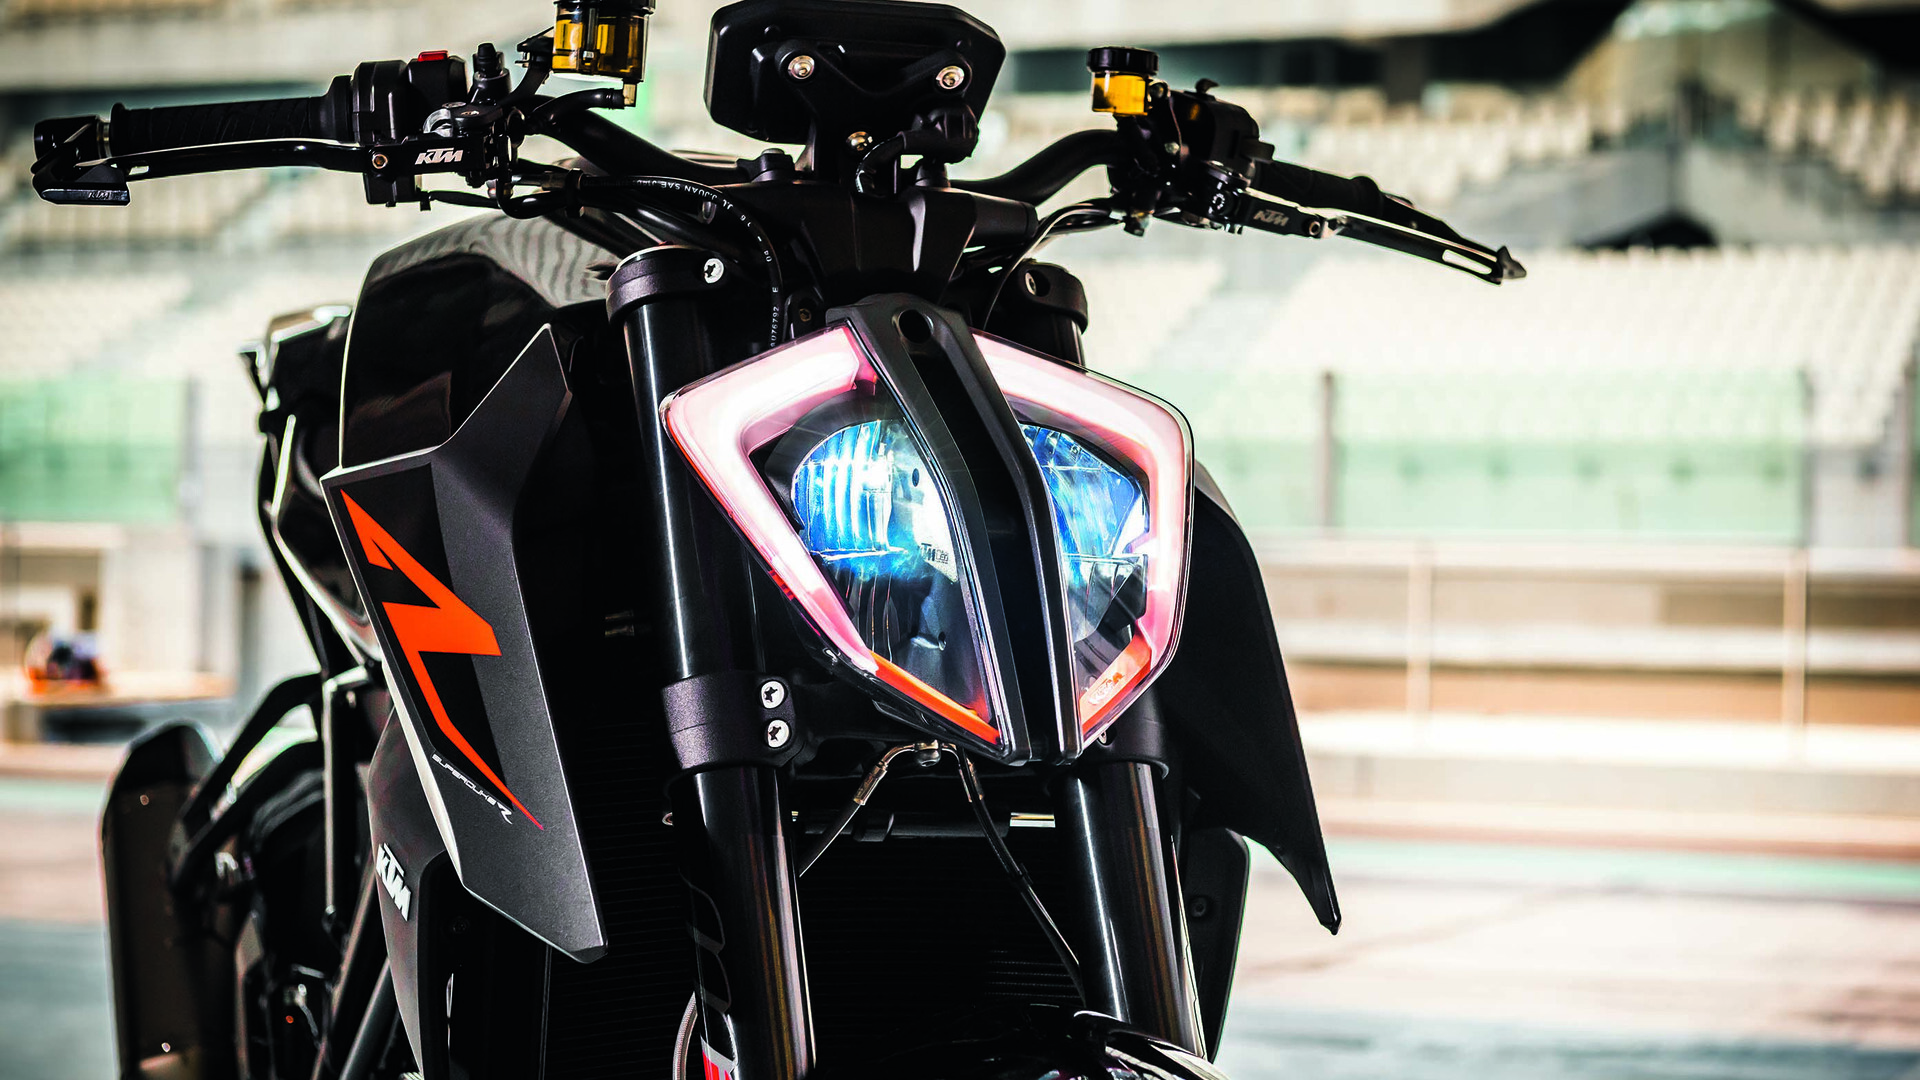 1920x1080 ktm 1290 super duke front view laptop full hd 1080p hd 4k wallpapers images backgrounds photos and pictures ktm 1290 super duke front view laptop